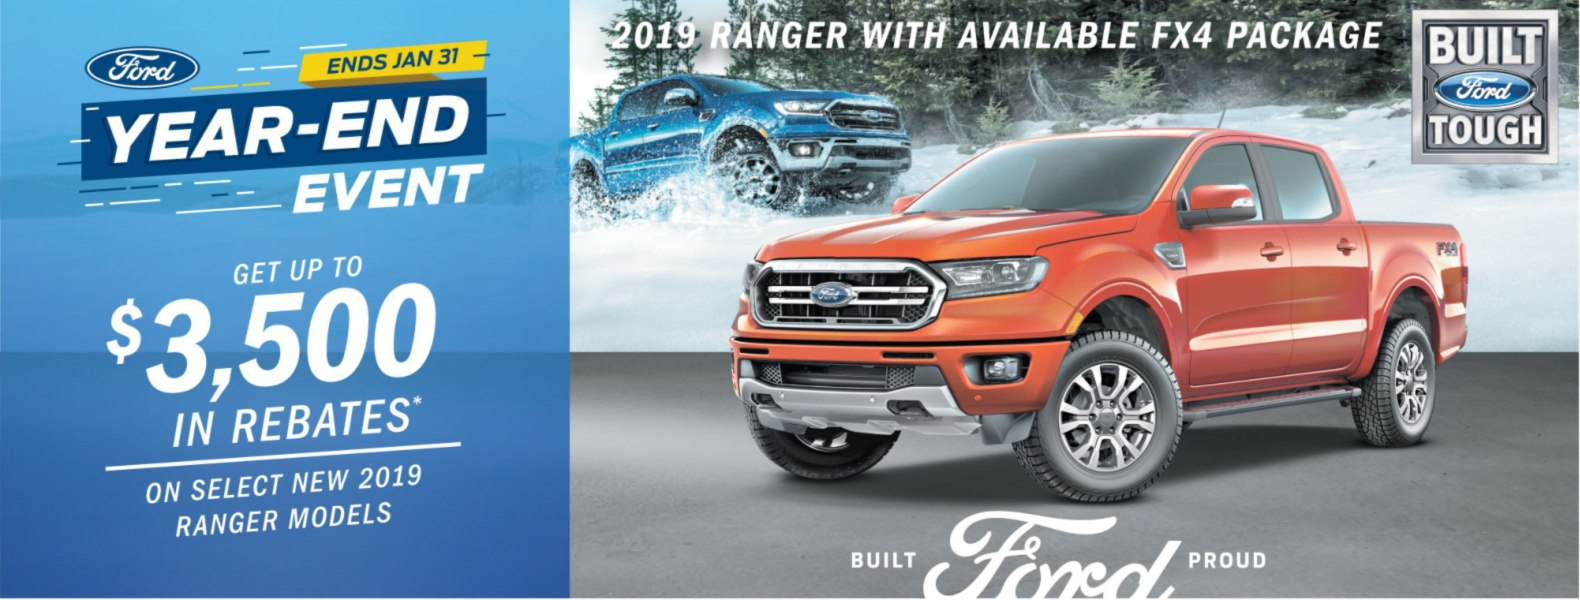 ford ranget 2019 rebate